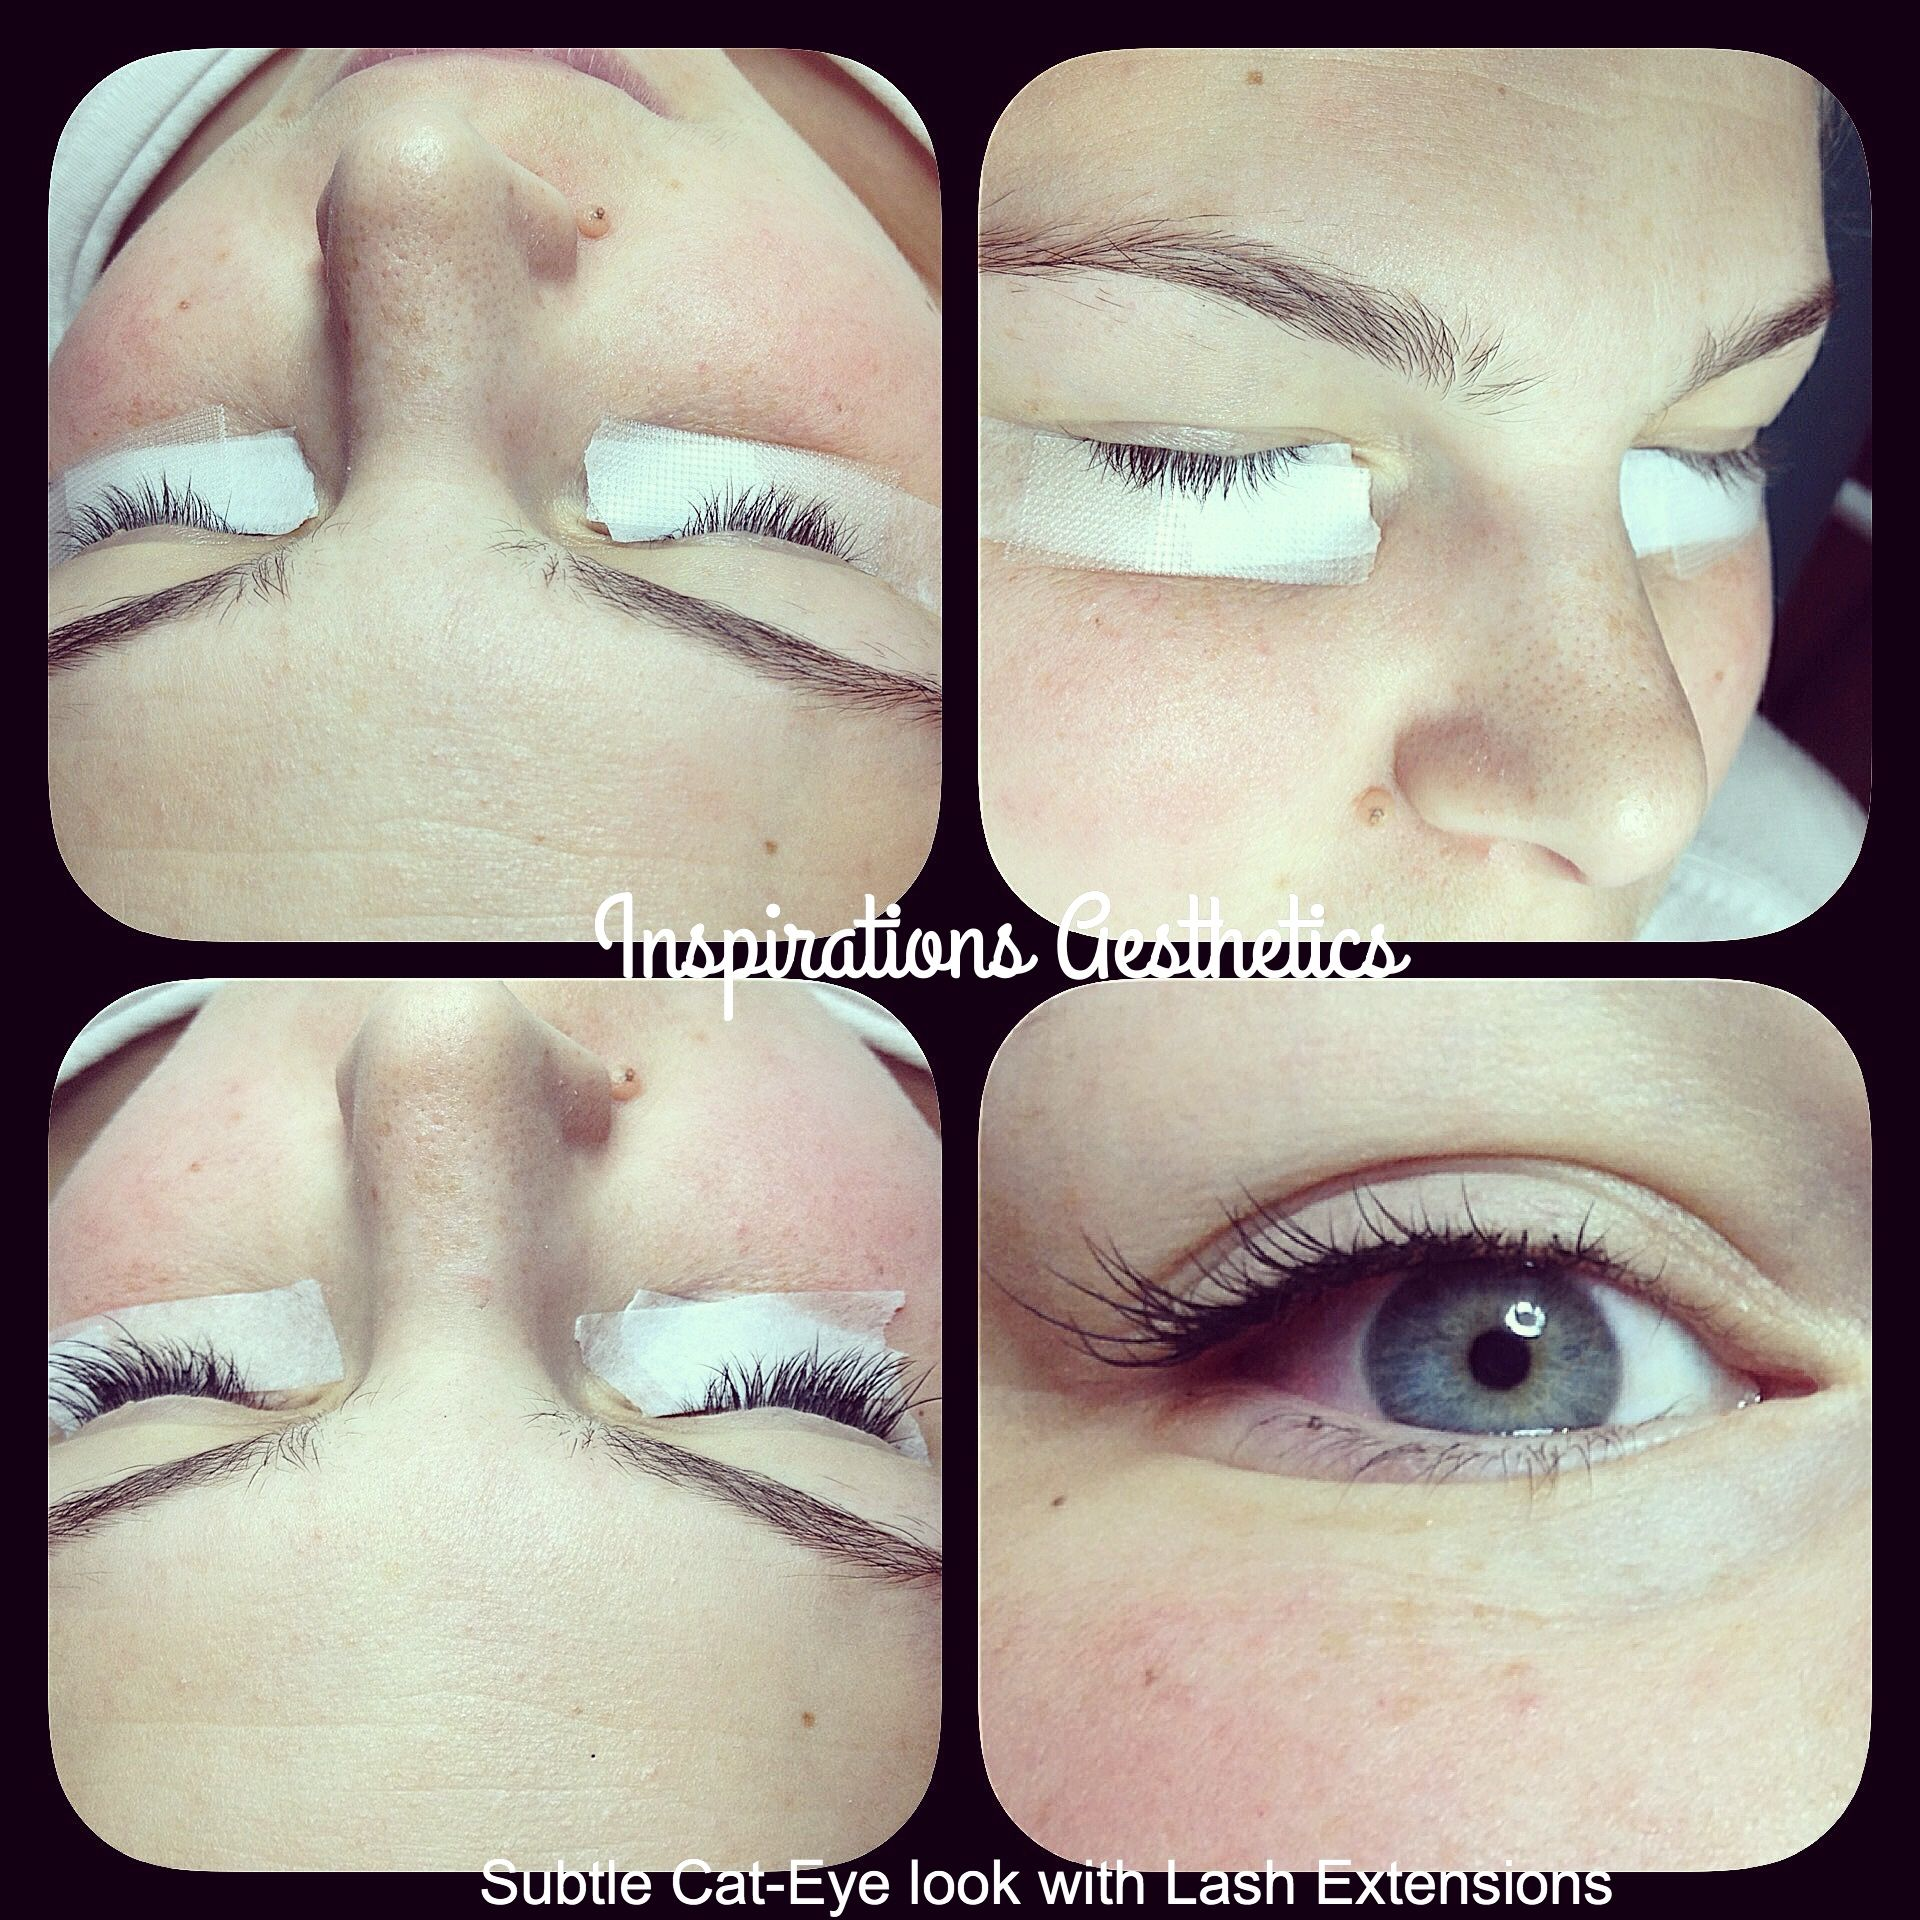 Natural Cat eye lash extensions. inspirations aesthetics